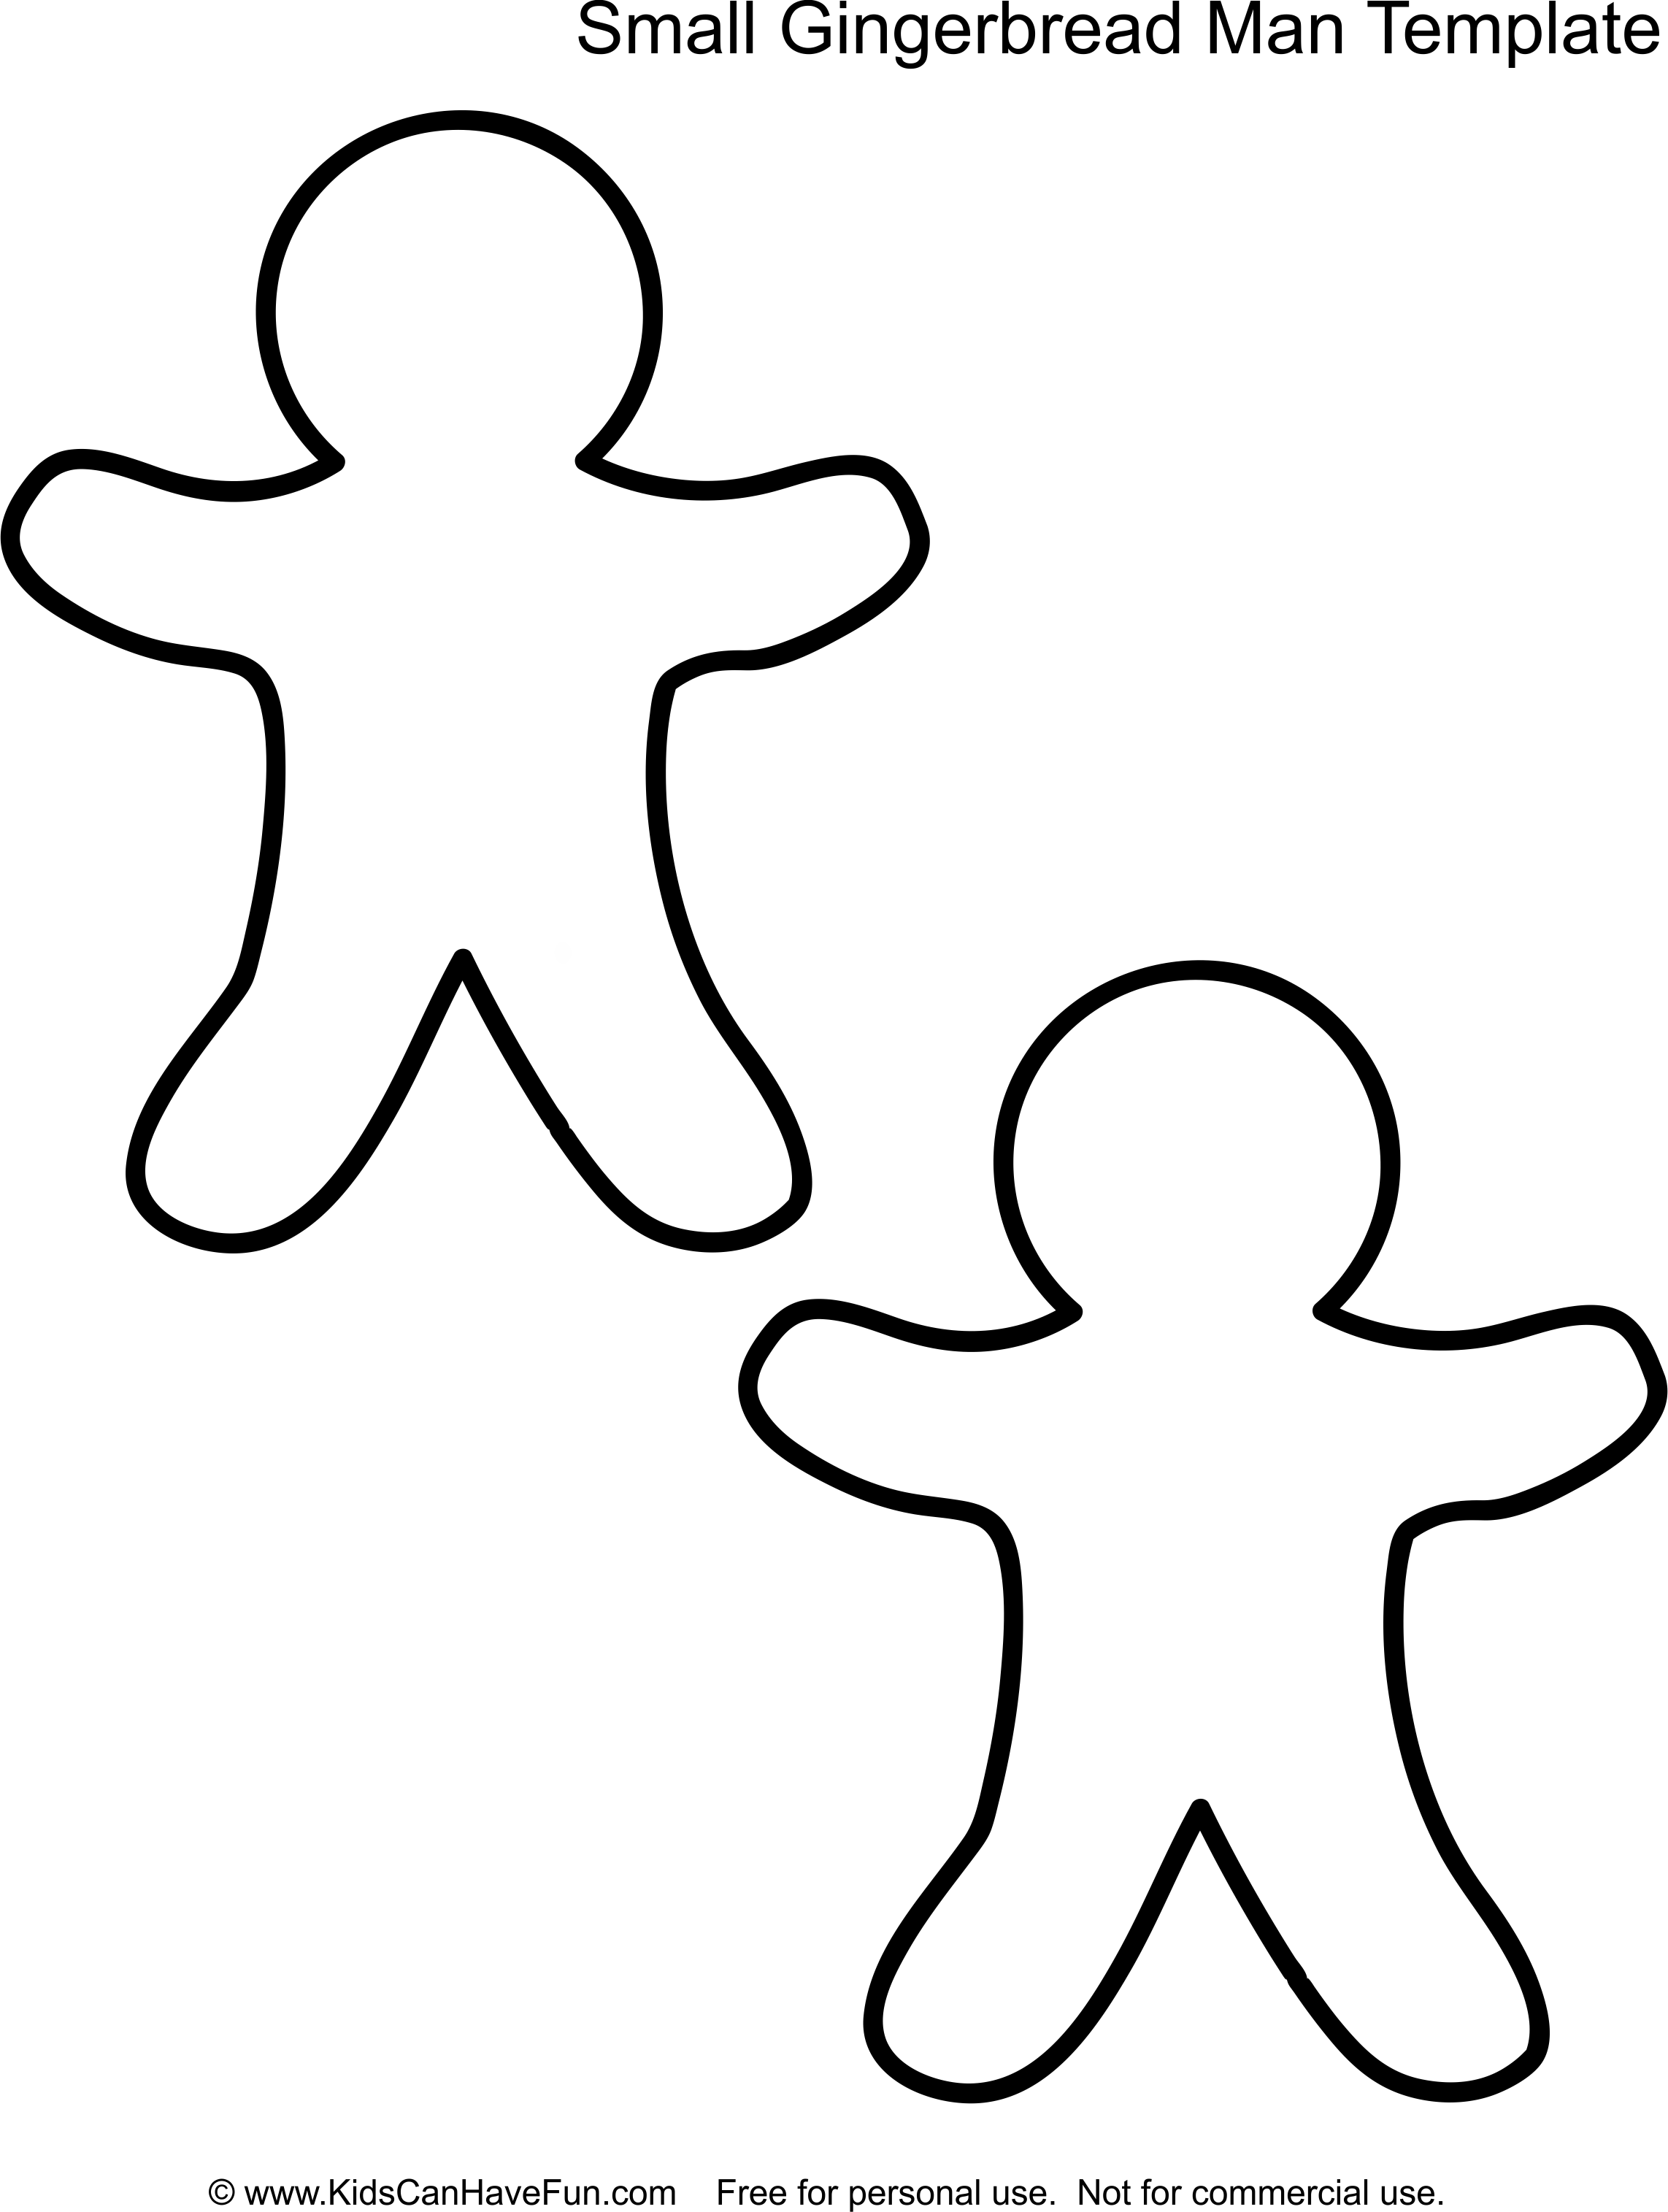 Small gingerbread man template http//www.kidscanhavefun